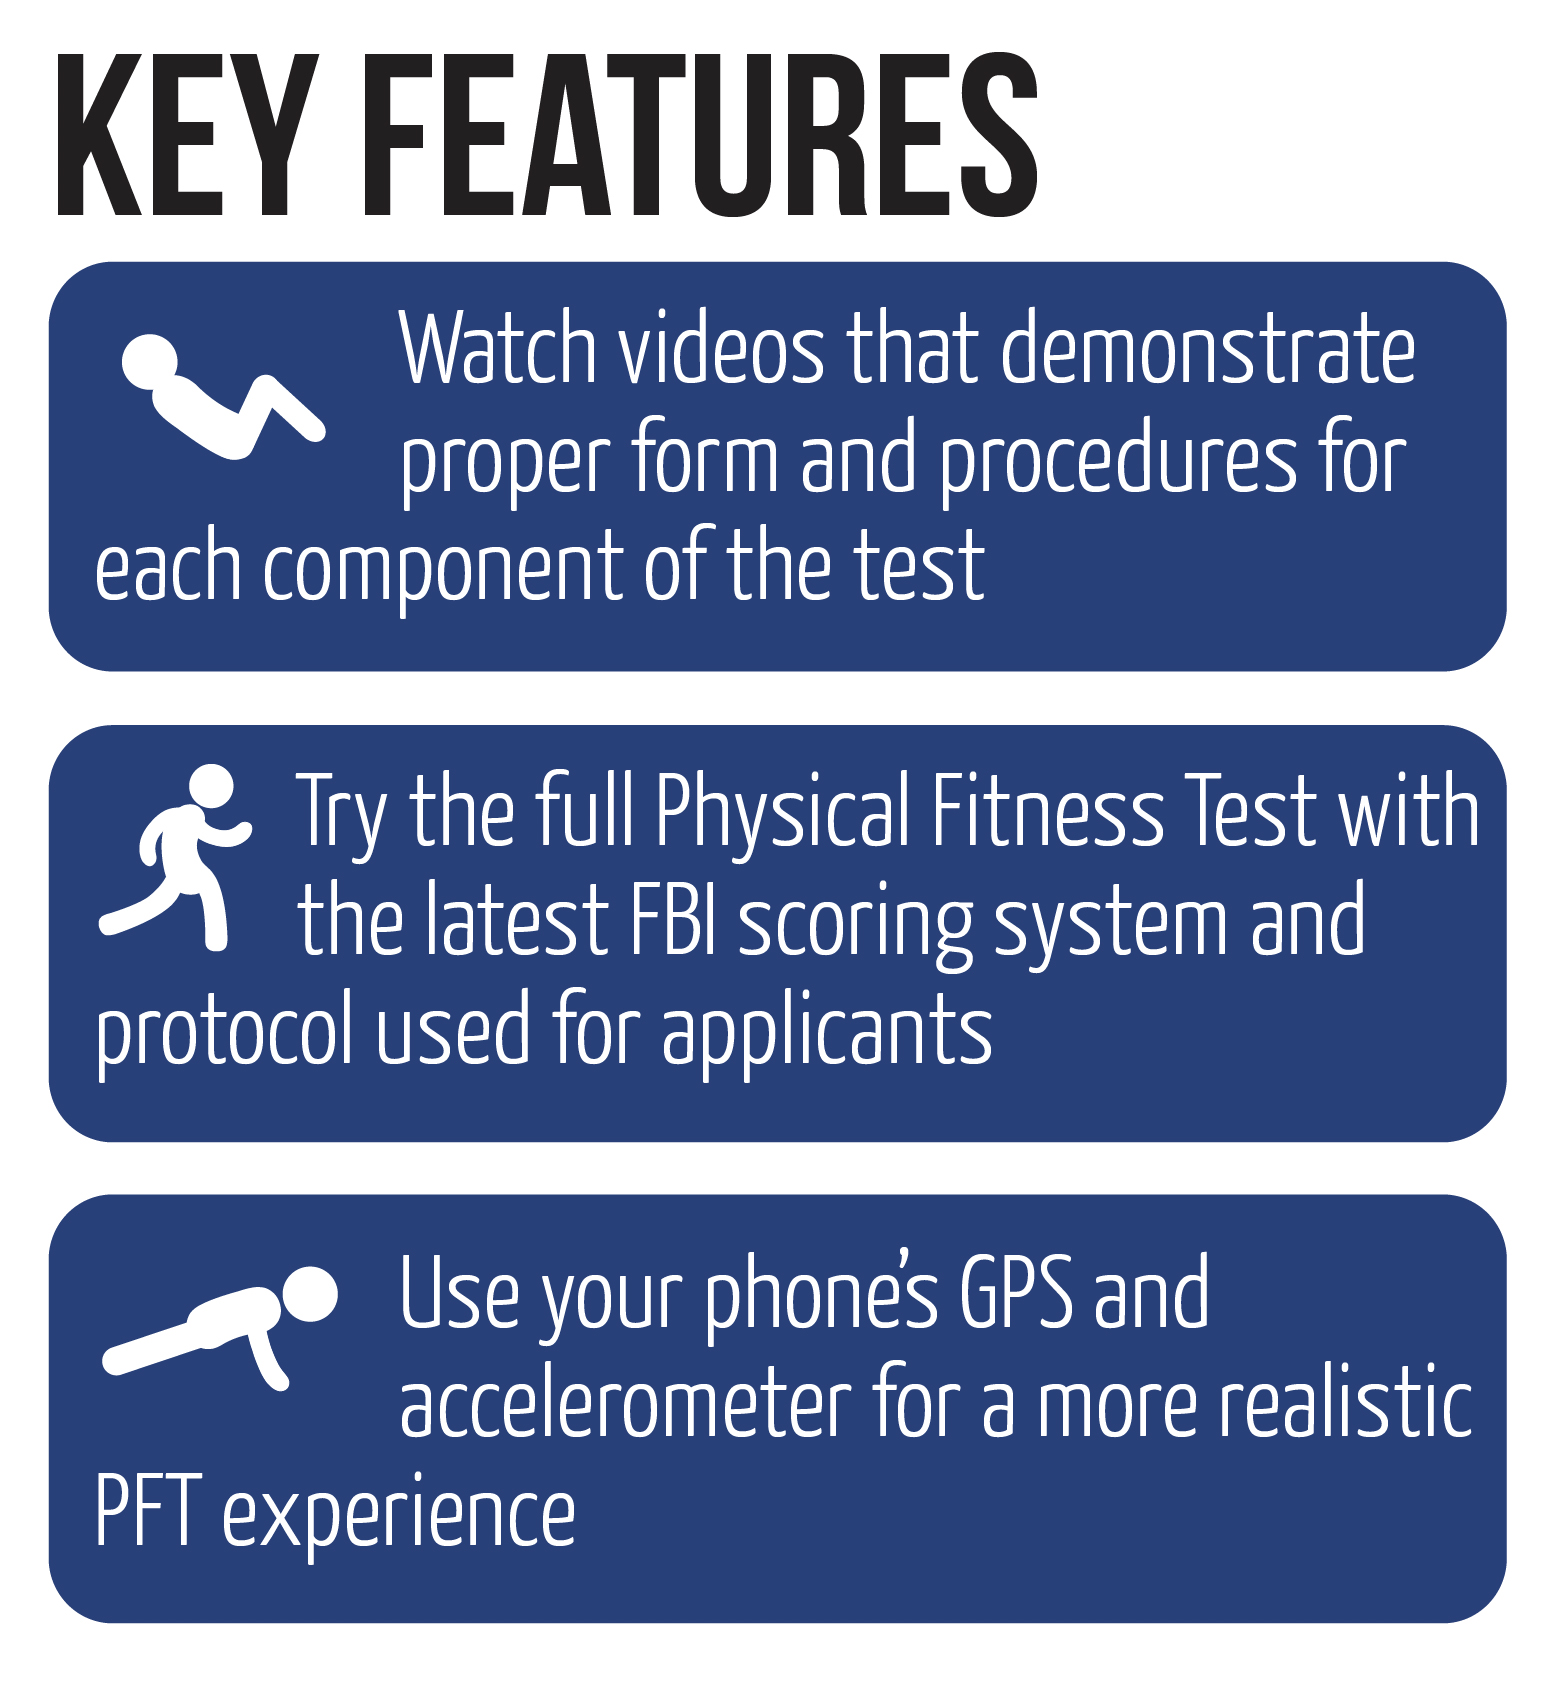 Graphic explaining the key features of the FBI Physical Fitness Test app, such as motion sensing and video demonstrations.